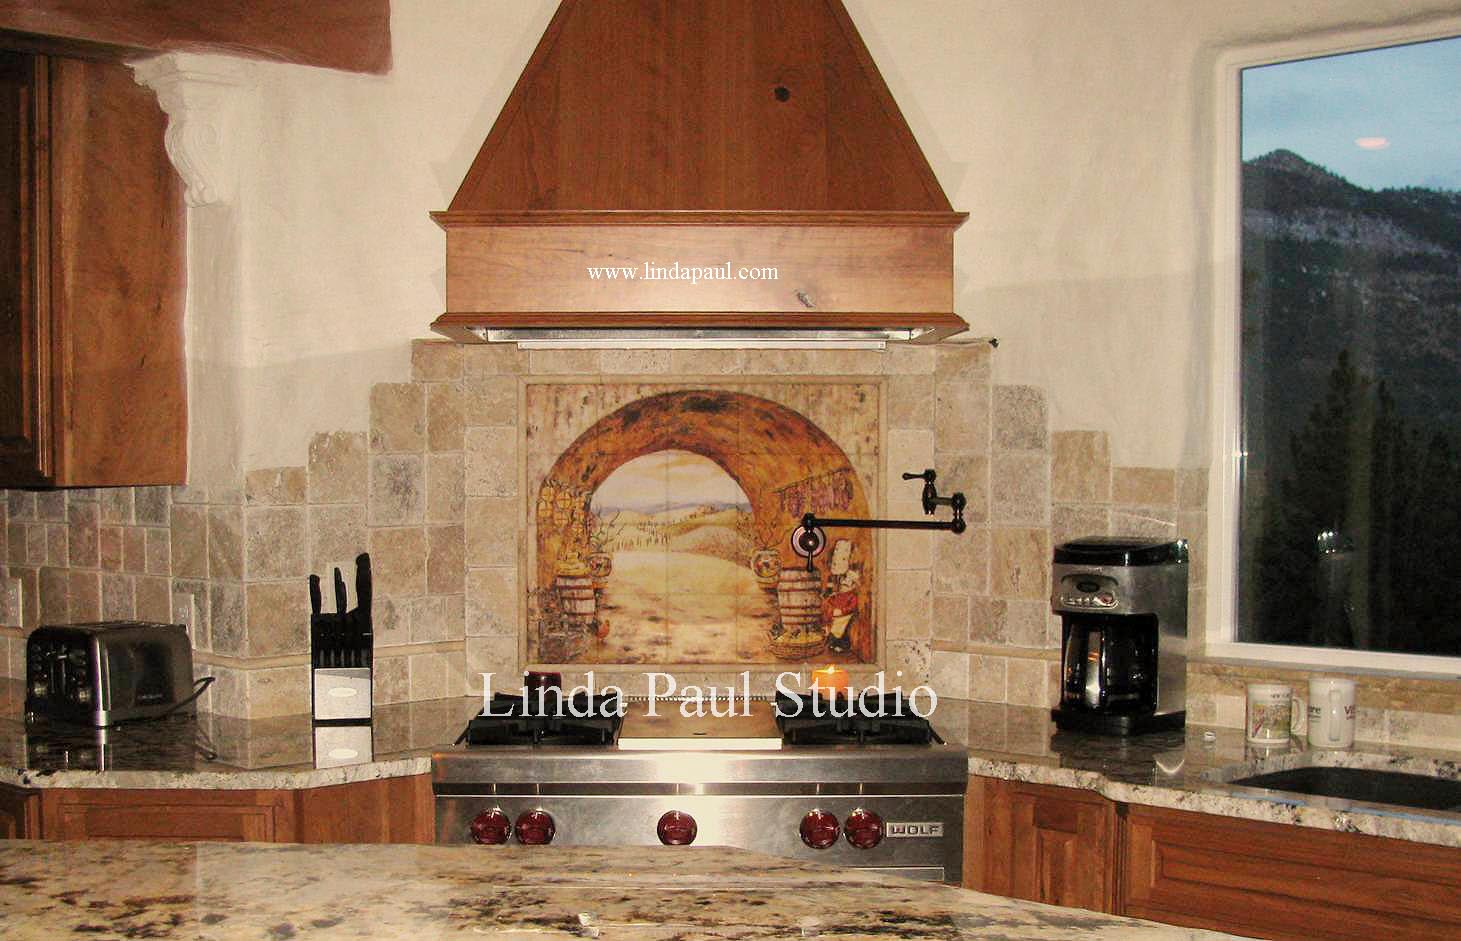 everything tuscany kitchen backsplash ideas and installation - Kitchen Backsplash Design Ideas